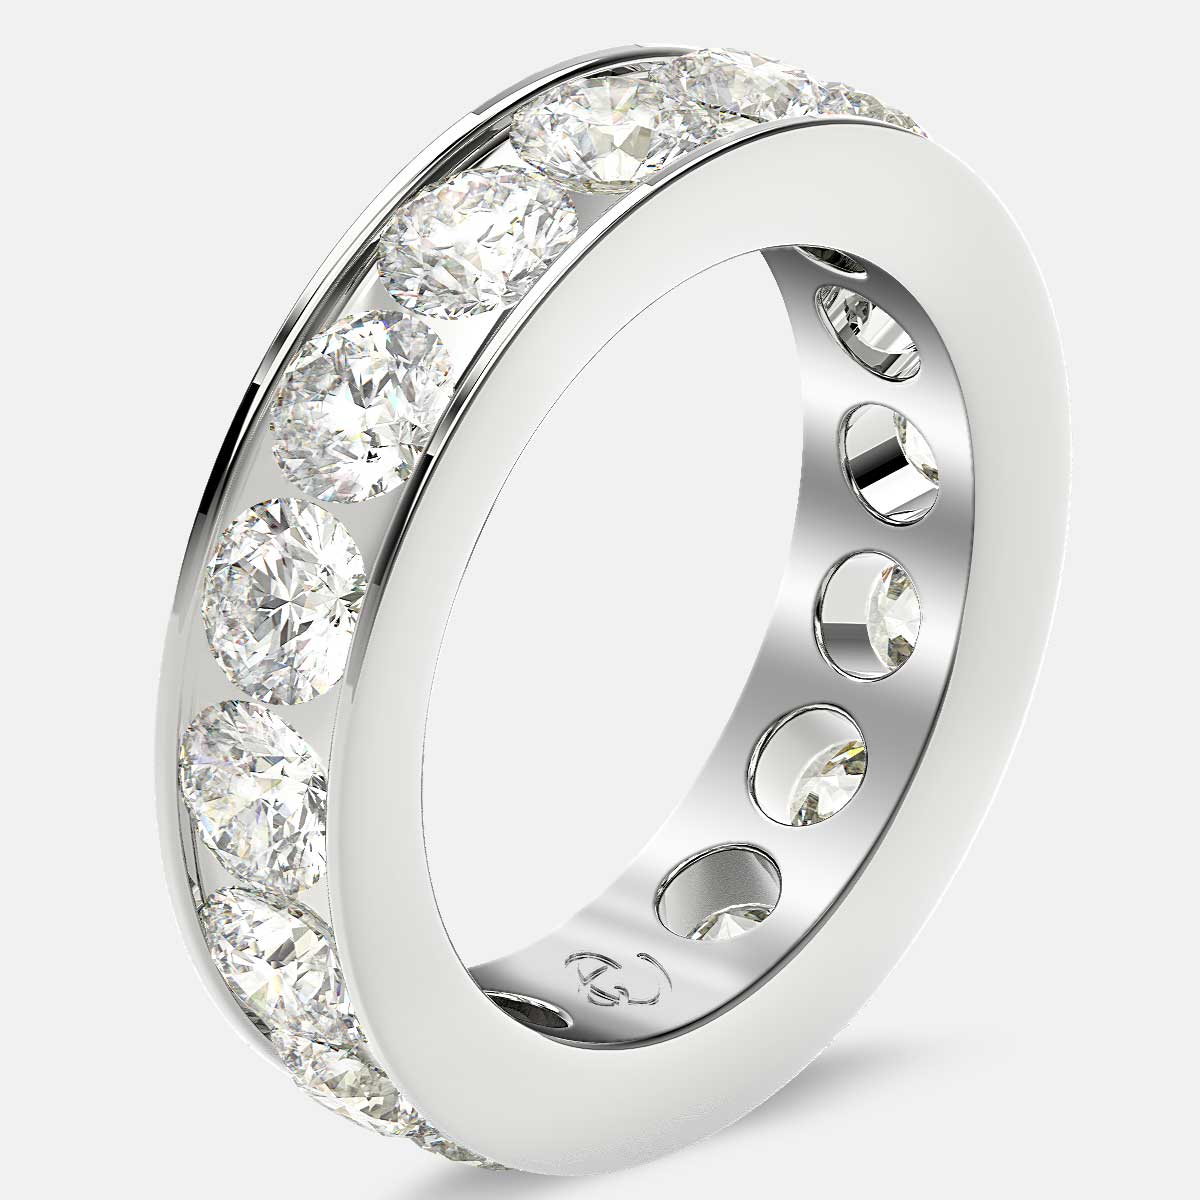 Channel Set Eternity Ring with Round Diamonds in Platinum